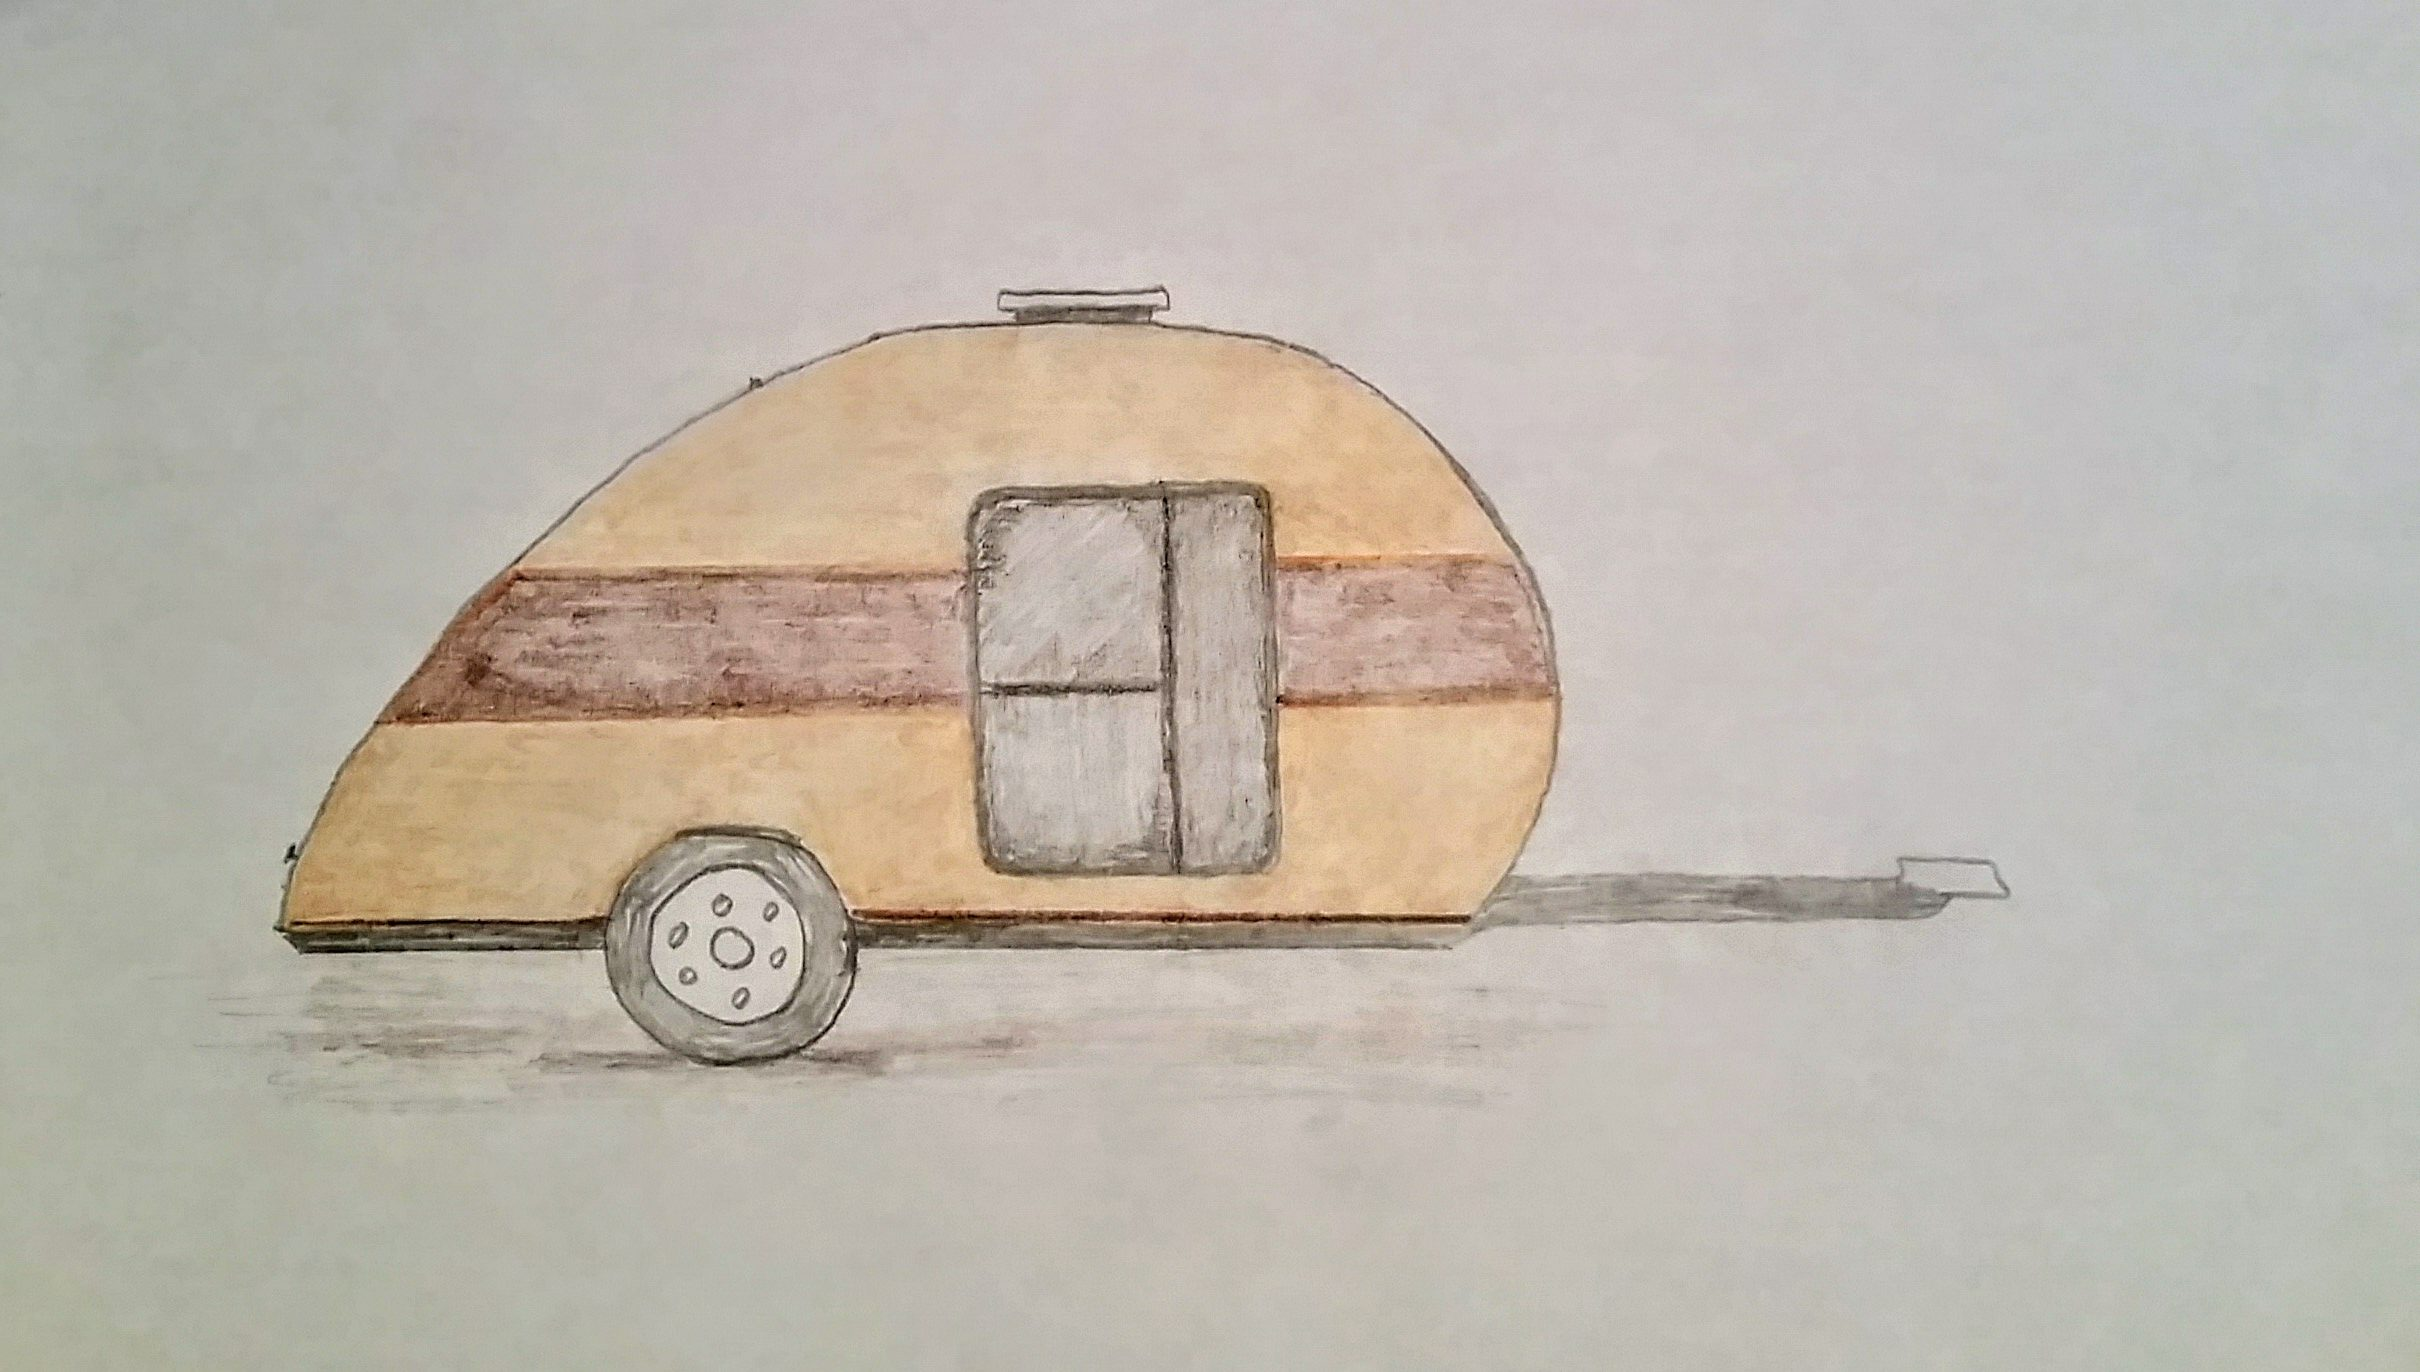 Teardrop Trailer Build - Page 2 of 4 - Planning and building